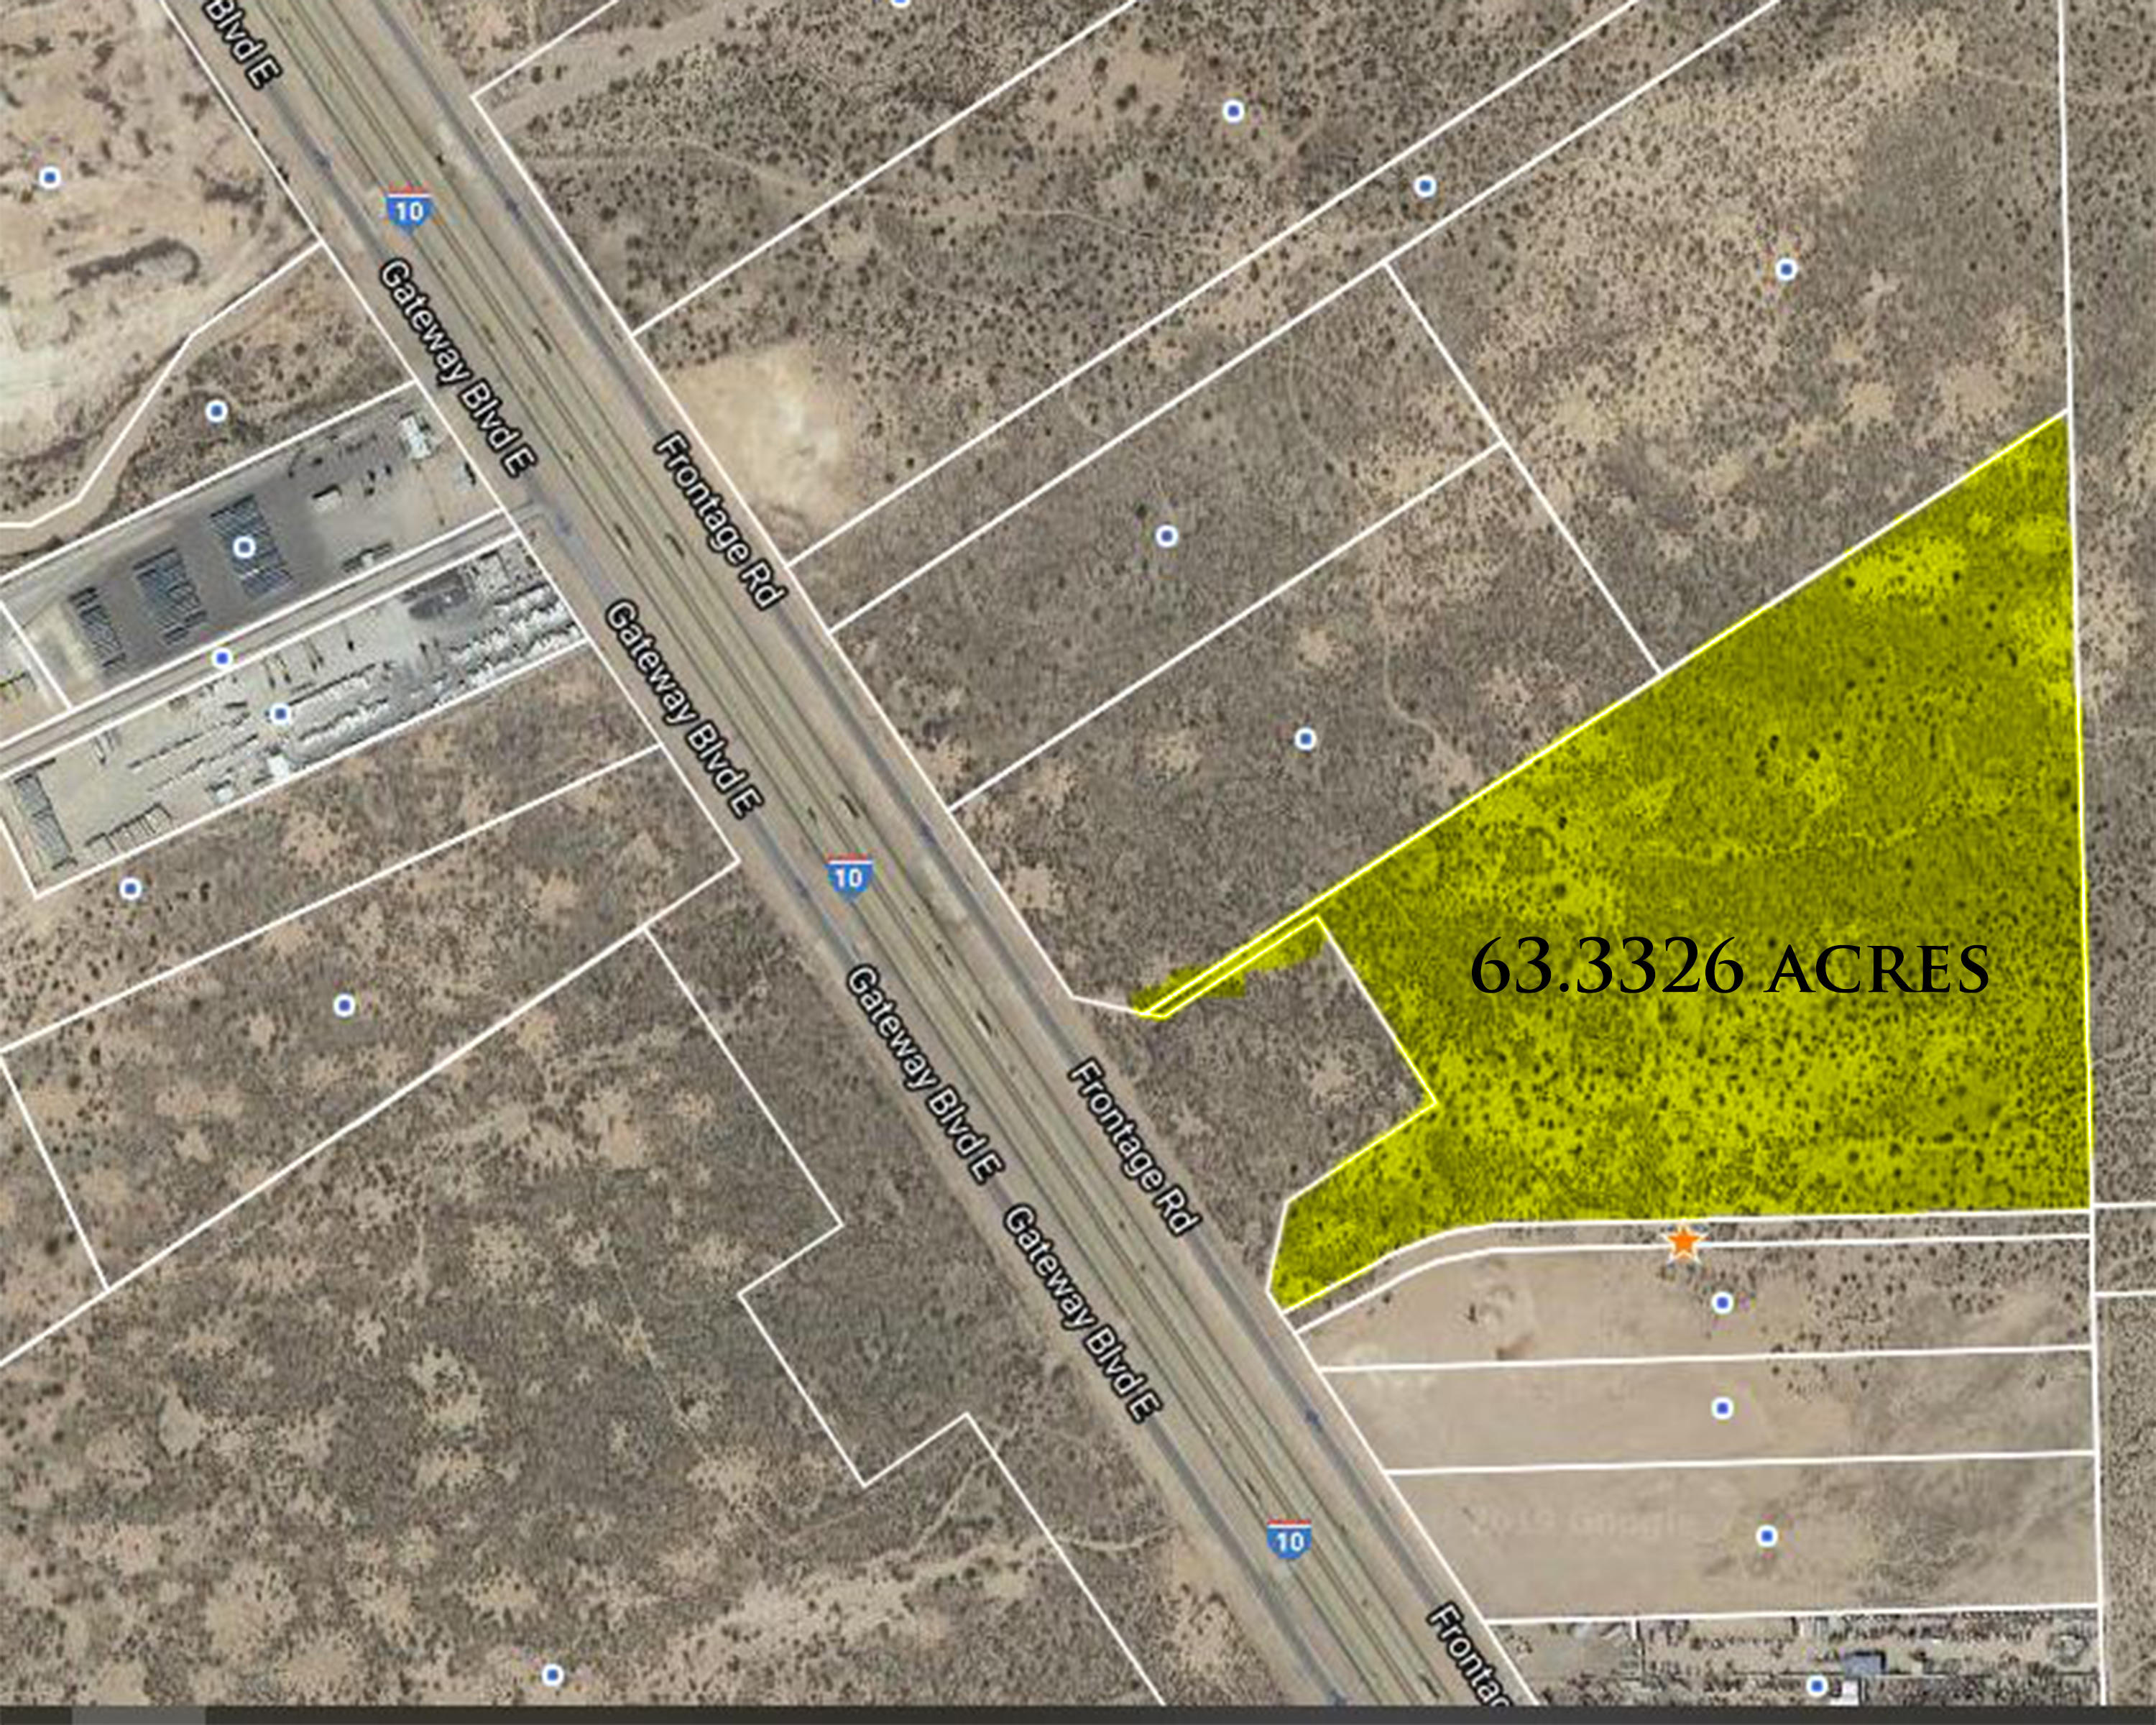 TBD TBD, Socorro, Texas 79927, ,Land,For sale,TBD,818541